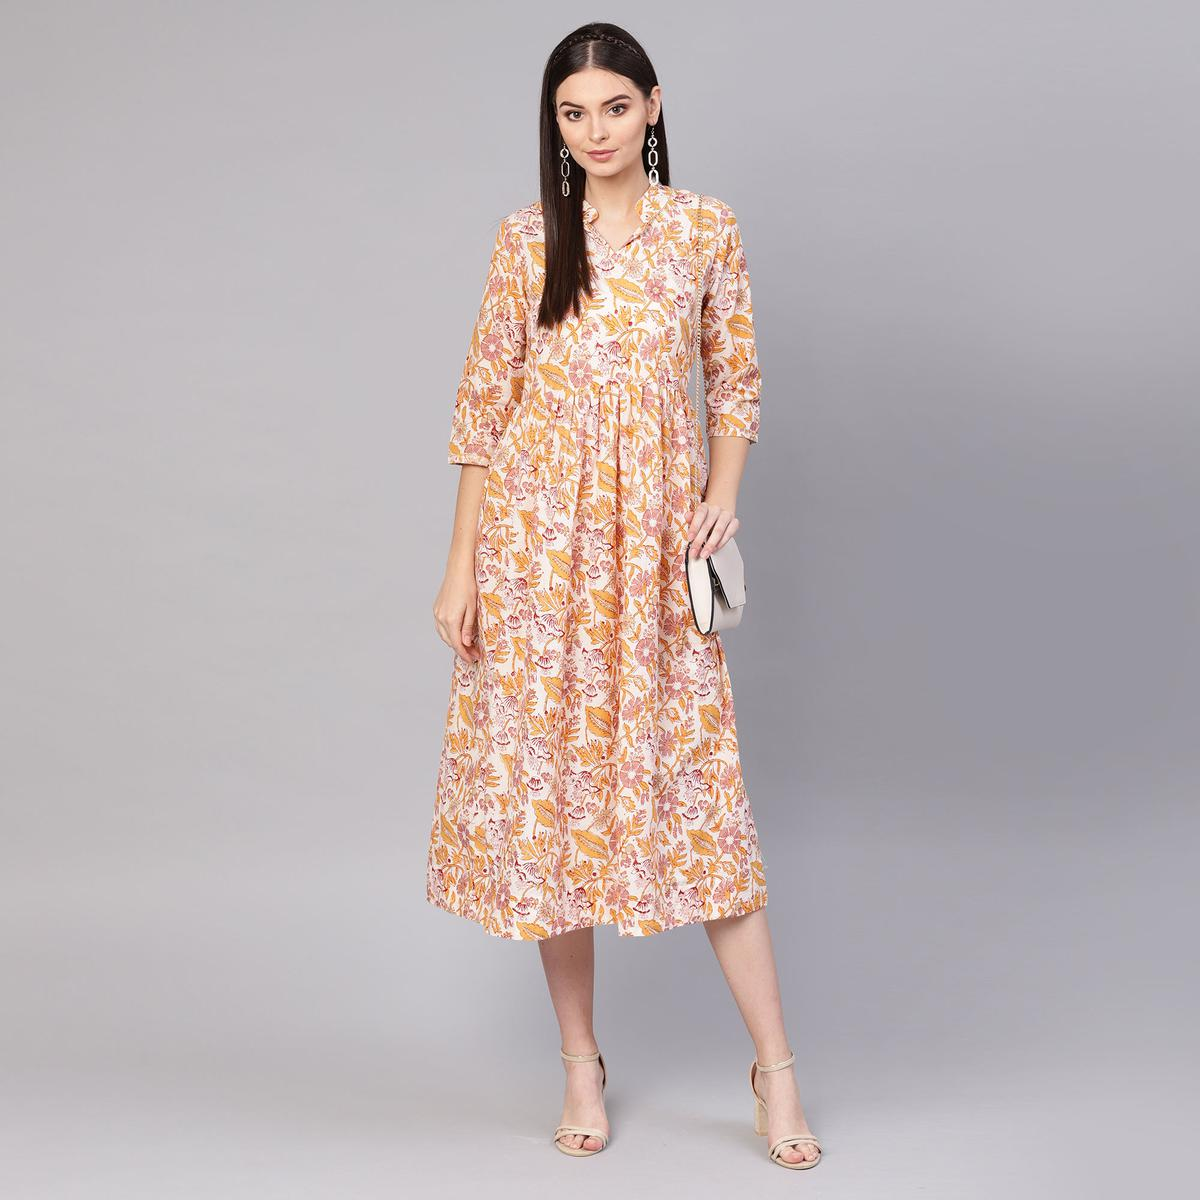 Engrossing Off White-Multi Colored Casual Printed Cotton Tunic